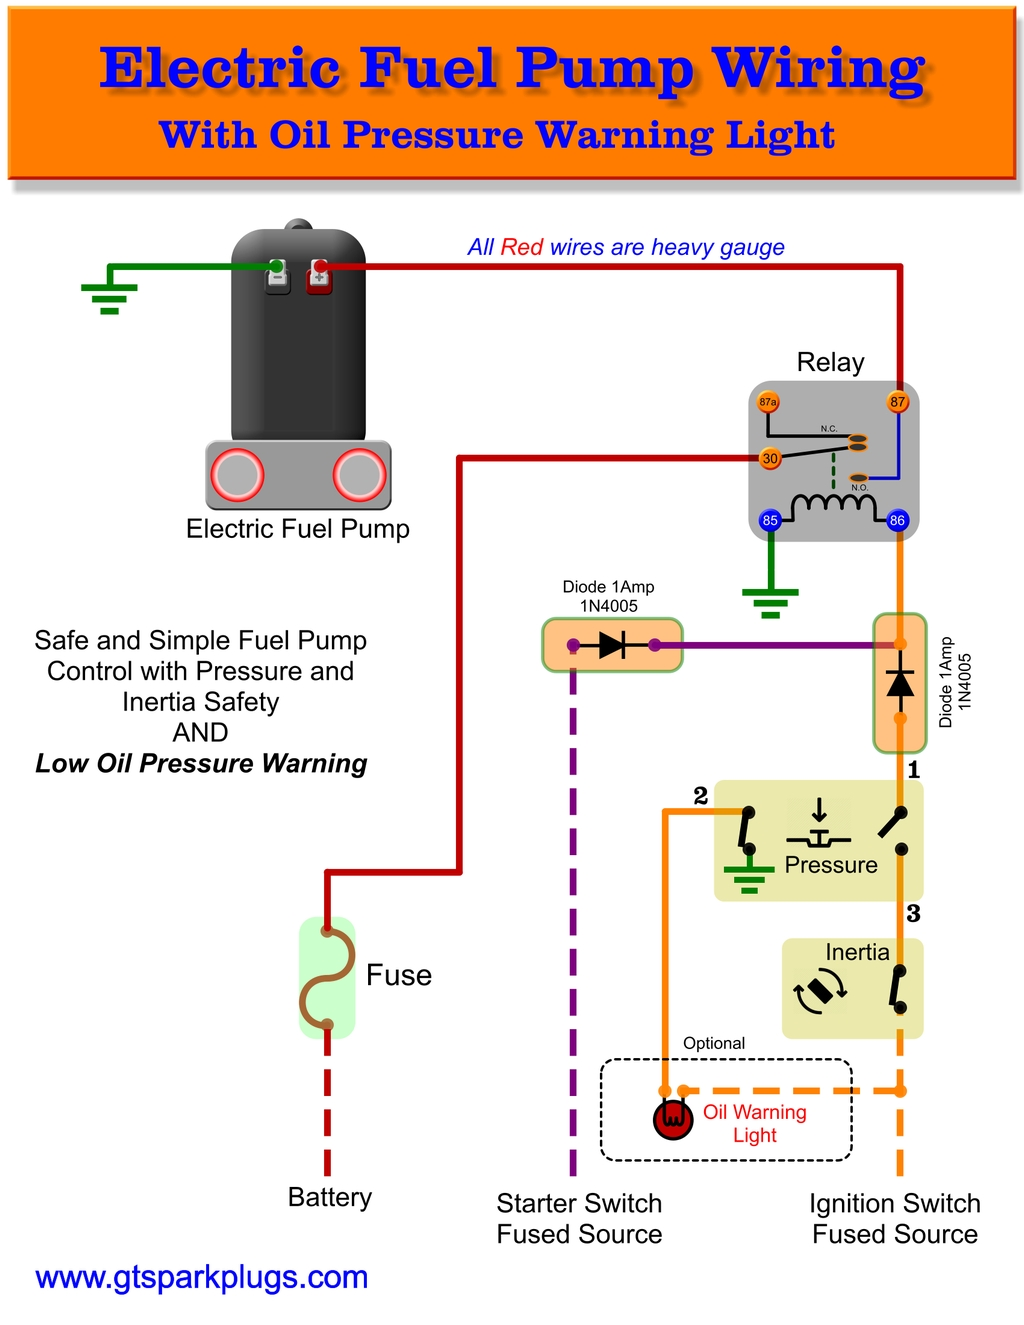 Fuel Pump Wiring Diagram All Payne Package Heat